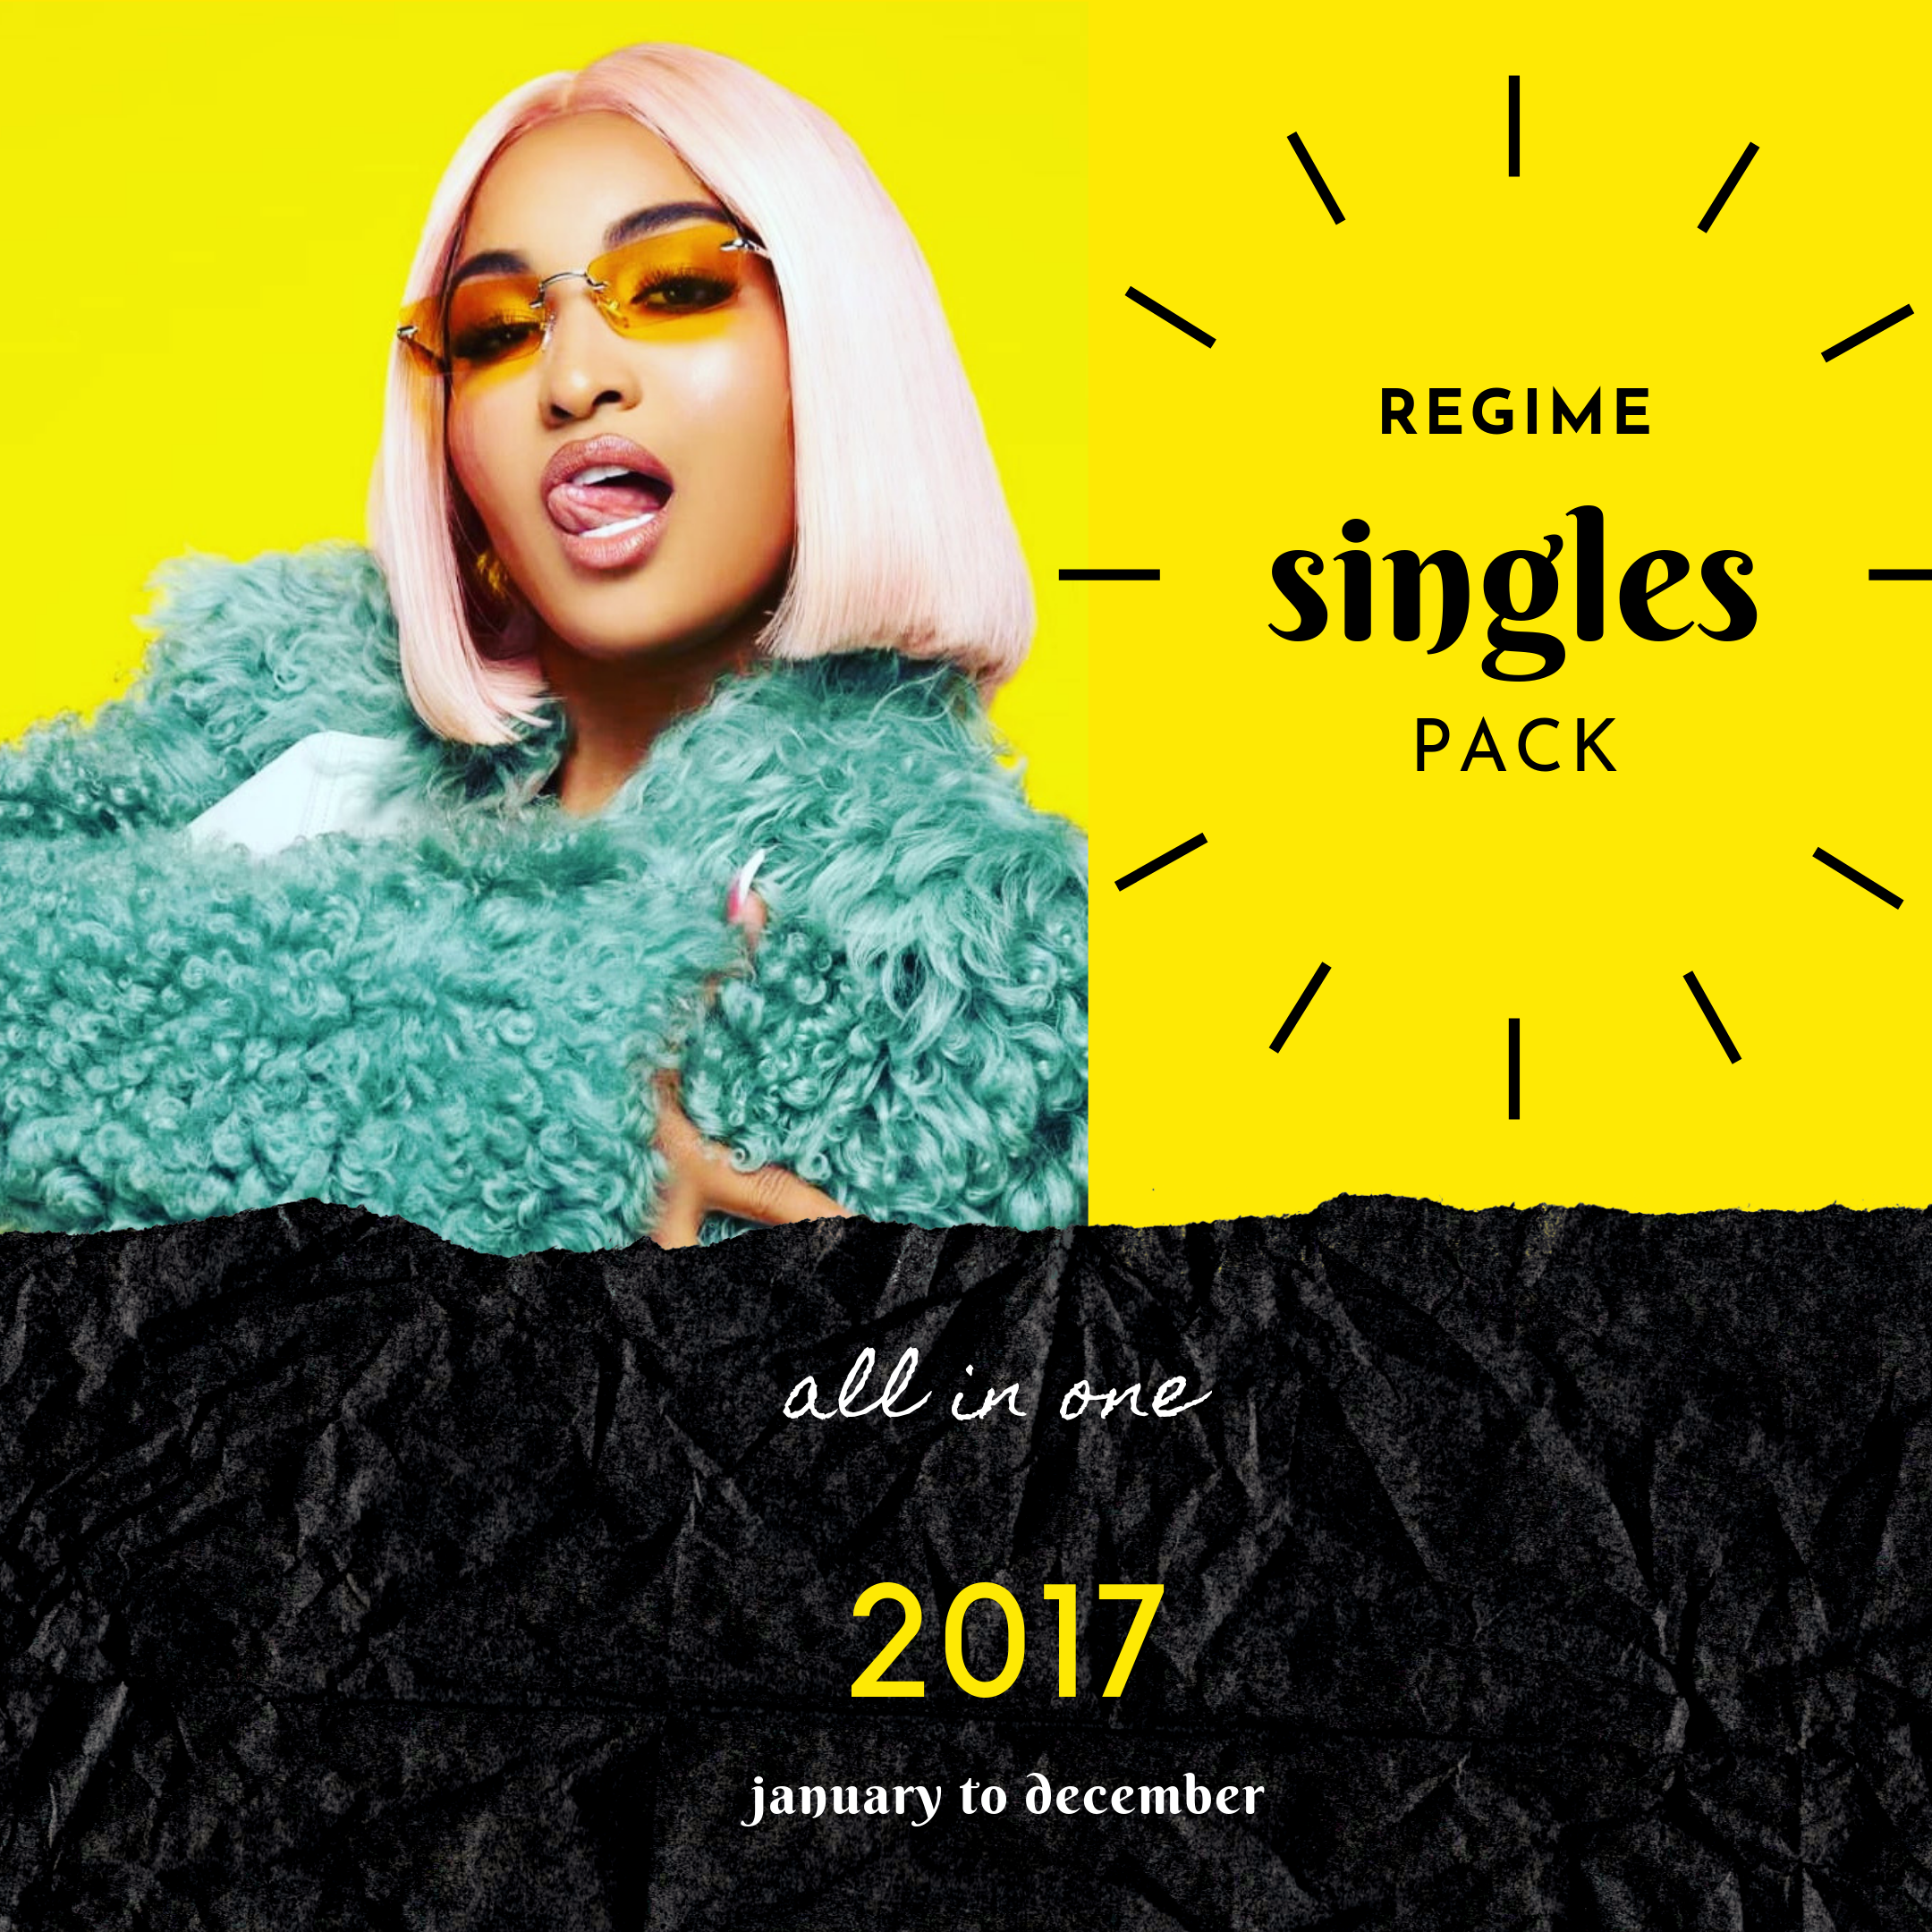 REGIME SINGLES PACK 2017 - JANUARY TO DECEMBER ALL IN ONE